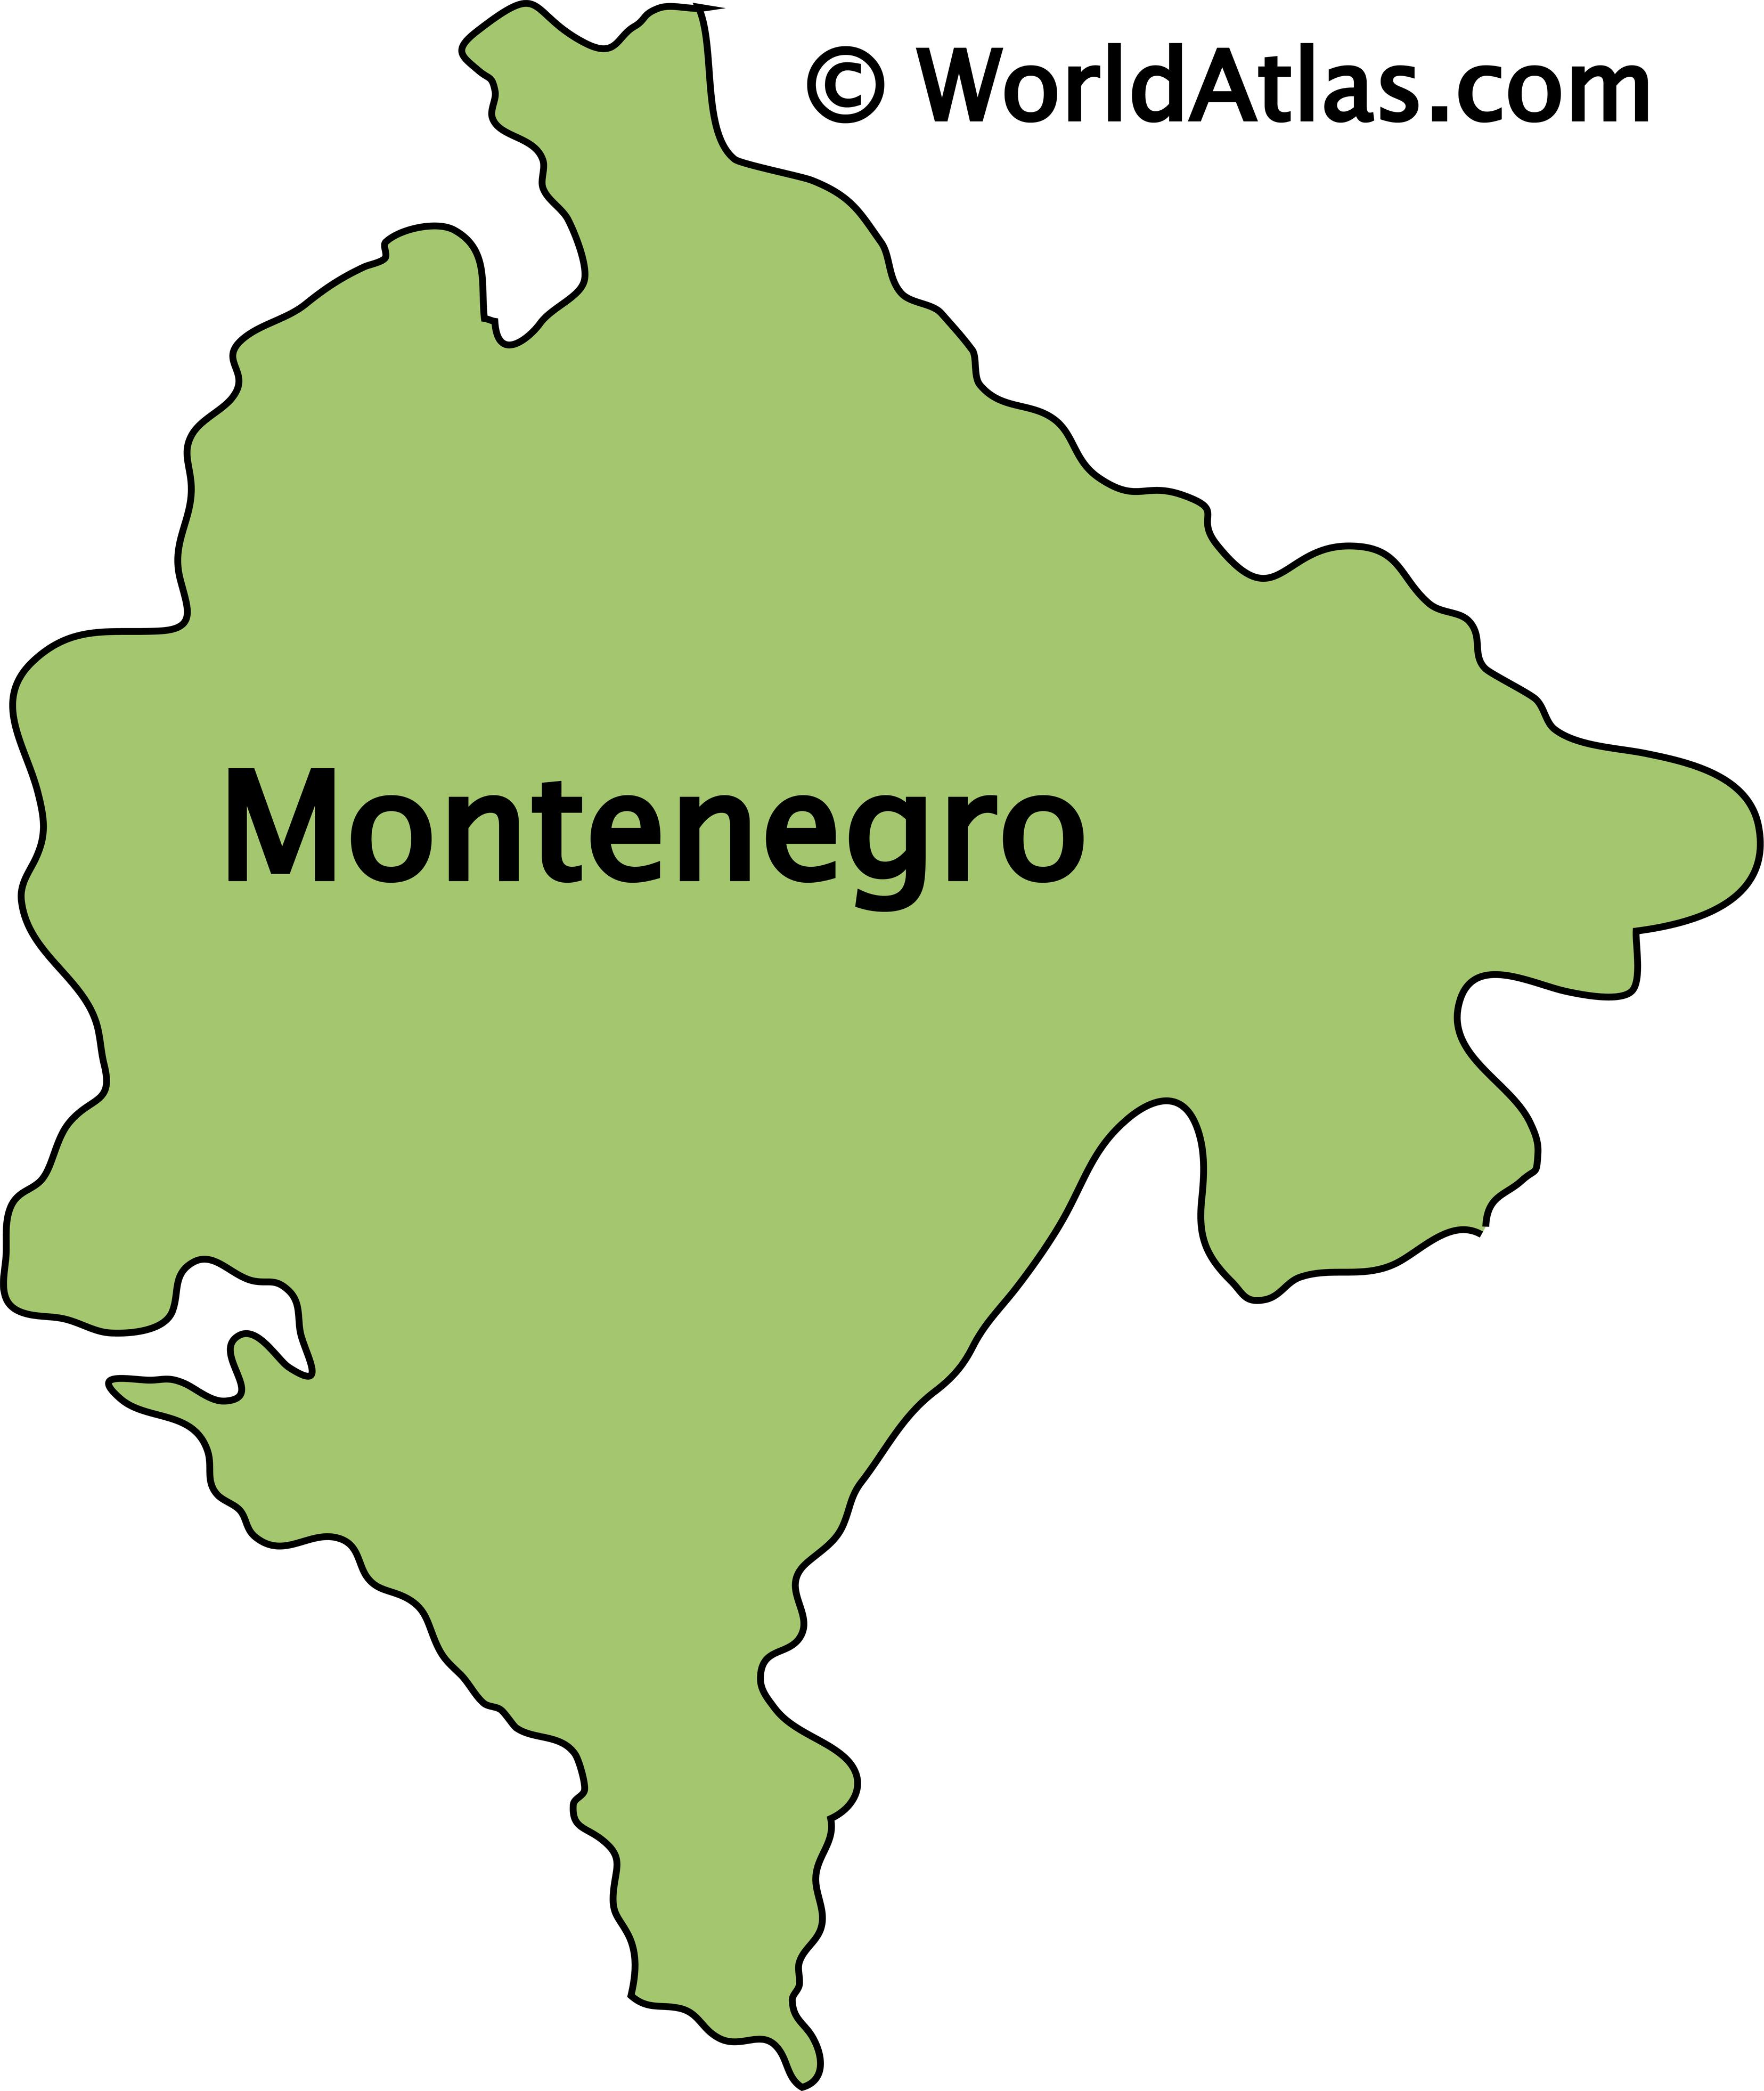 Outline Map of Montenegro